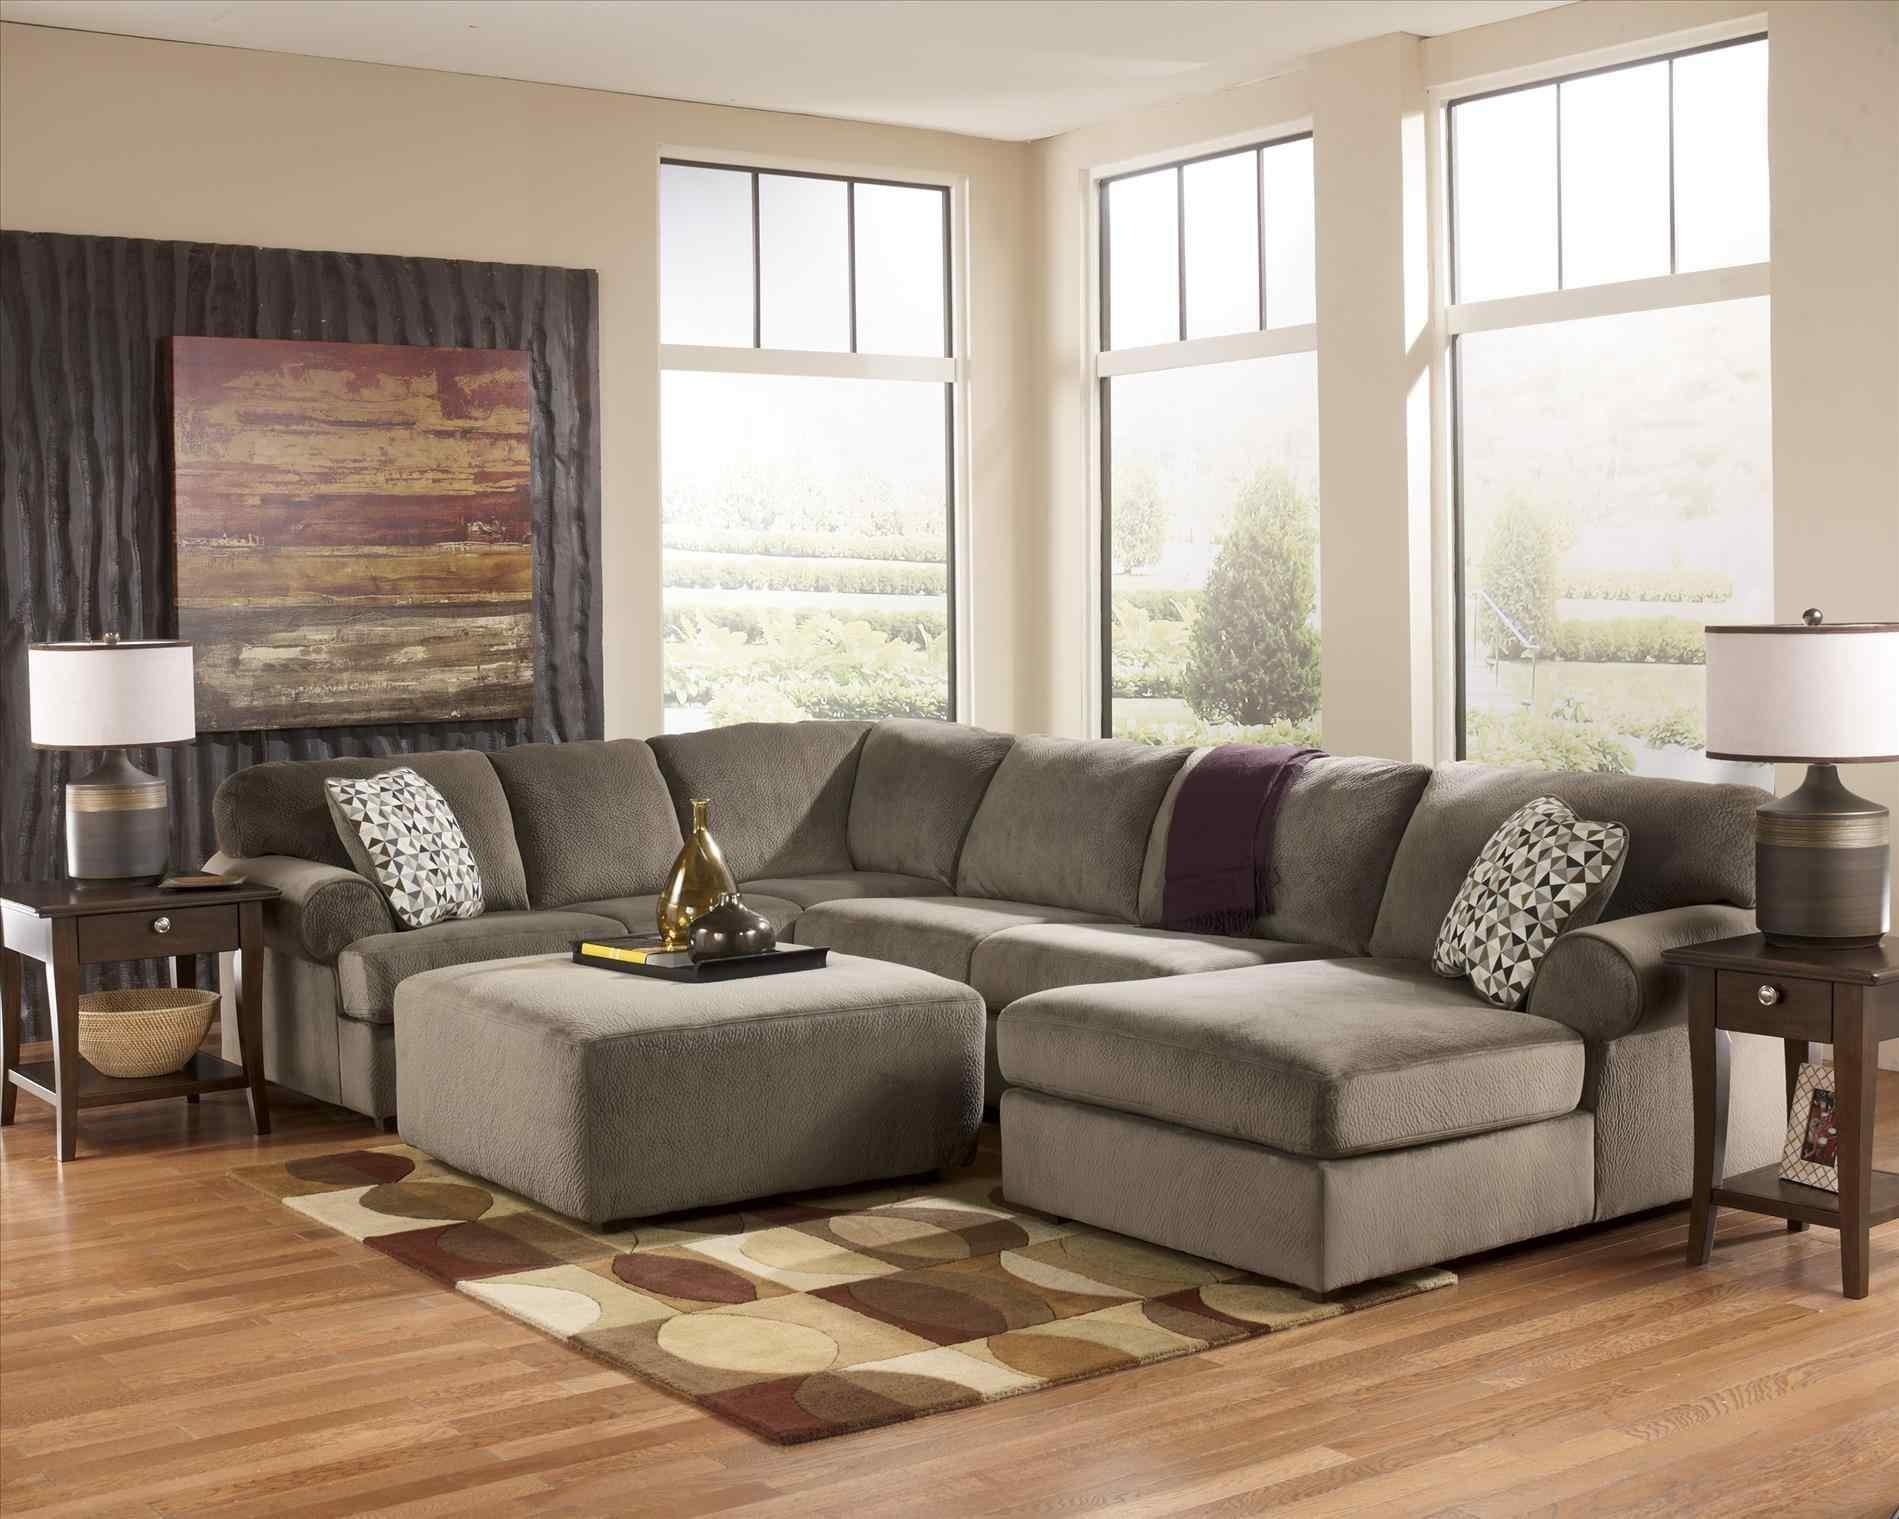 Large Sectional Sofa With Ottoman | Chair And Sofa Intended For Sectional Sofa With Large Ottoman (View 16 of 20)